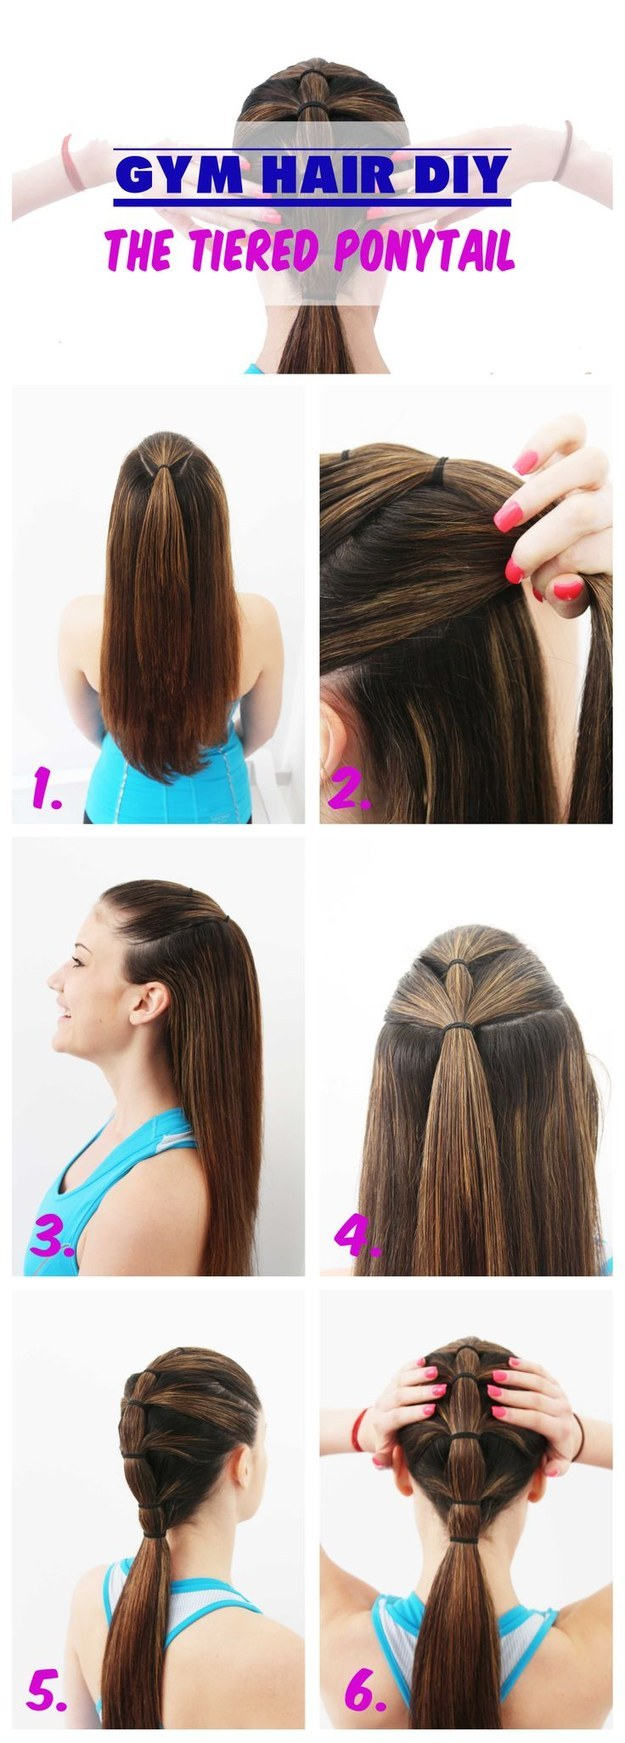 18 hair hacks for gym 3